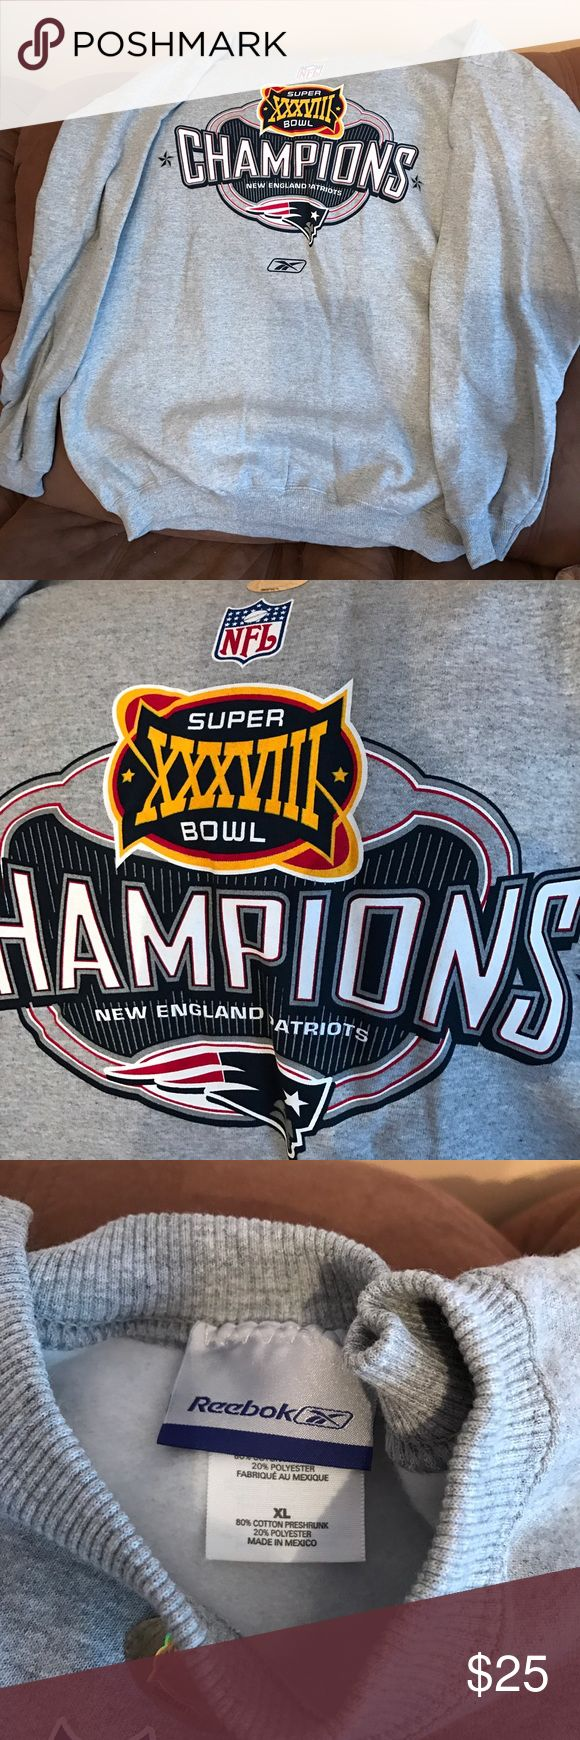 PATRIOTS Crew Sweatshirt Size XL PATRIOTS Super Bowl XXXVIII winning Crew Sweatshirt Size XL perfect condition, never worn, bought as a collectors piece Reebok Shirts Sweatshirts & Hoodies